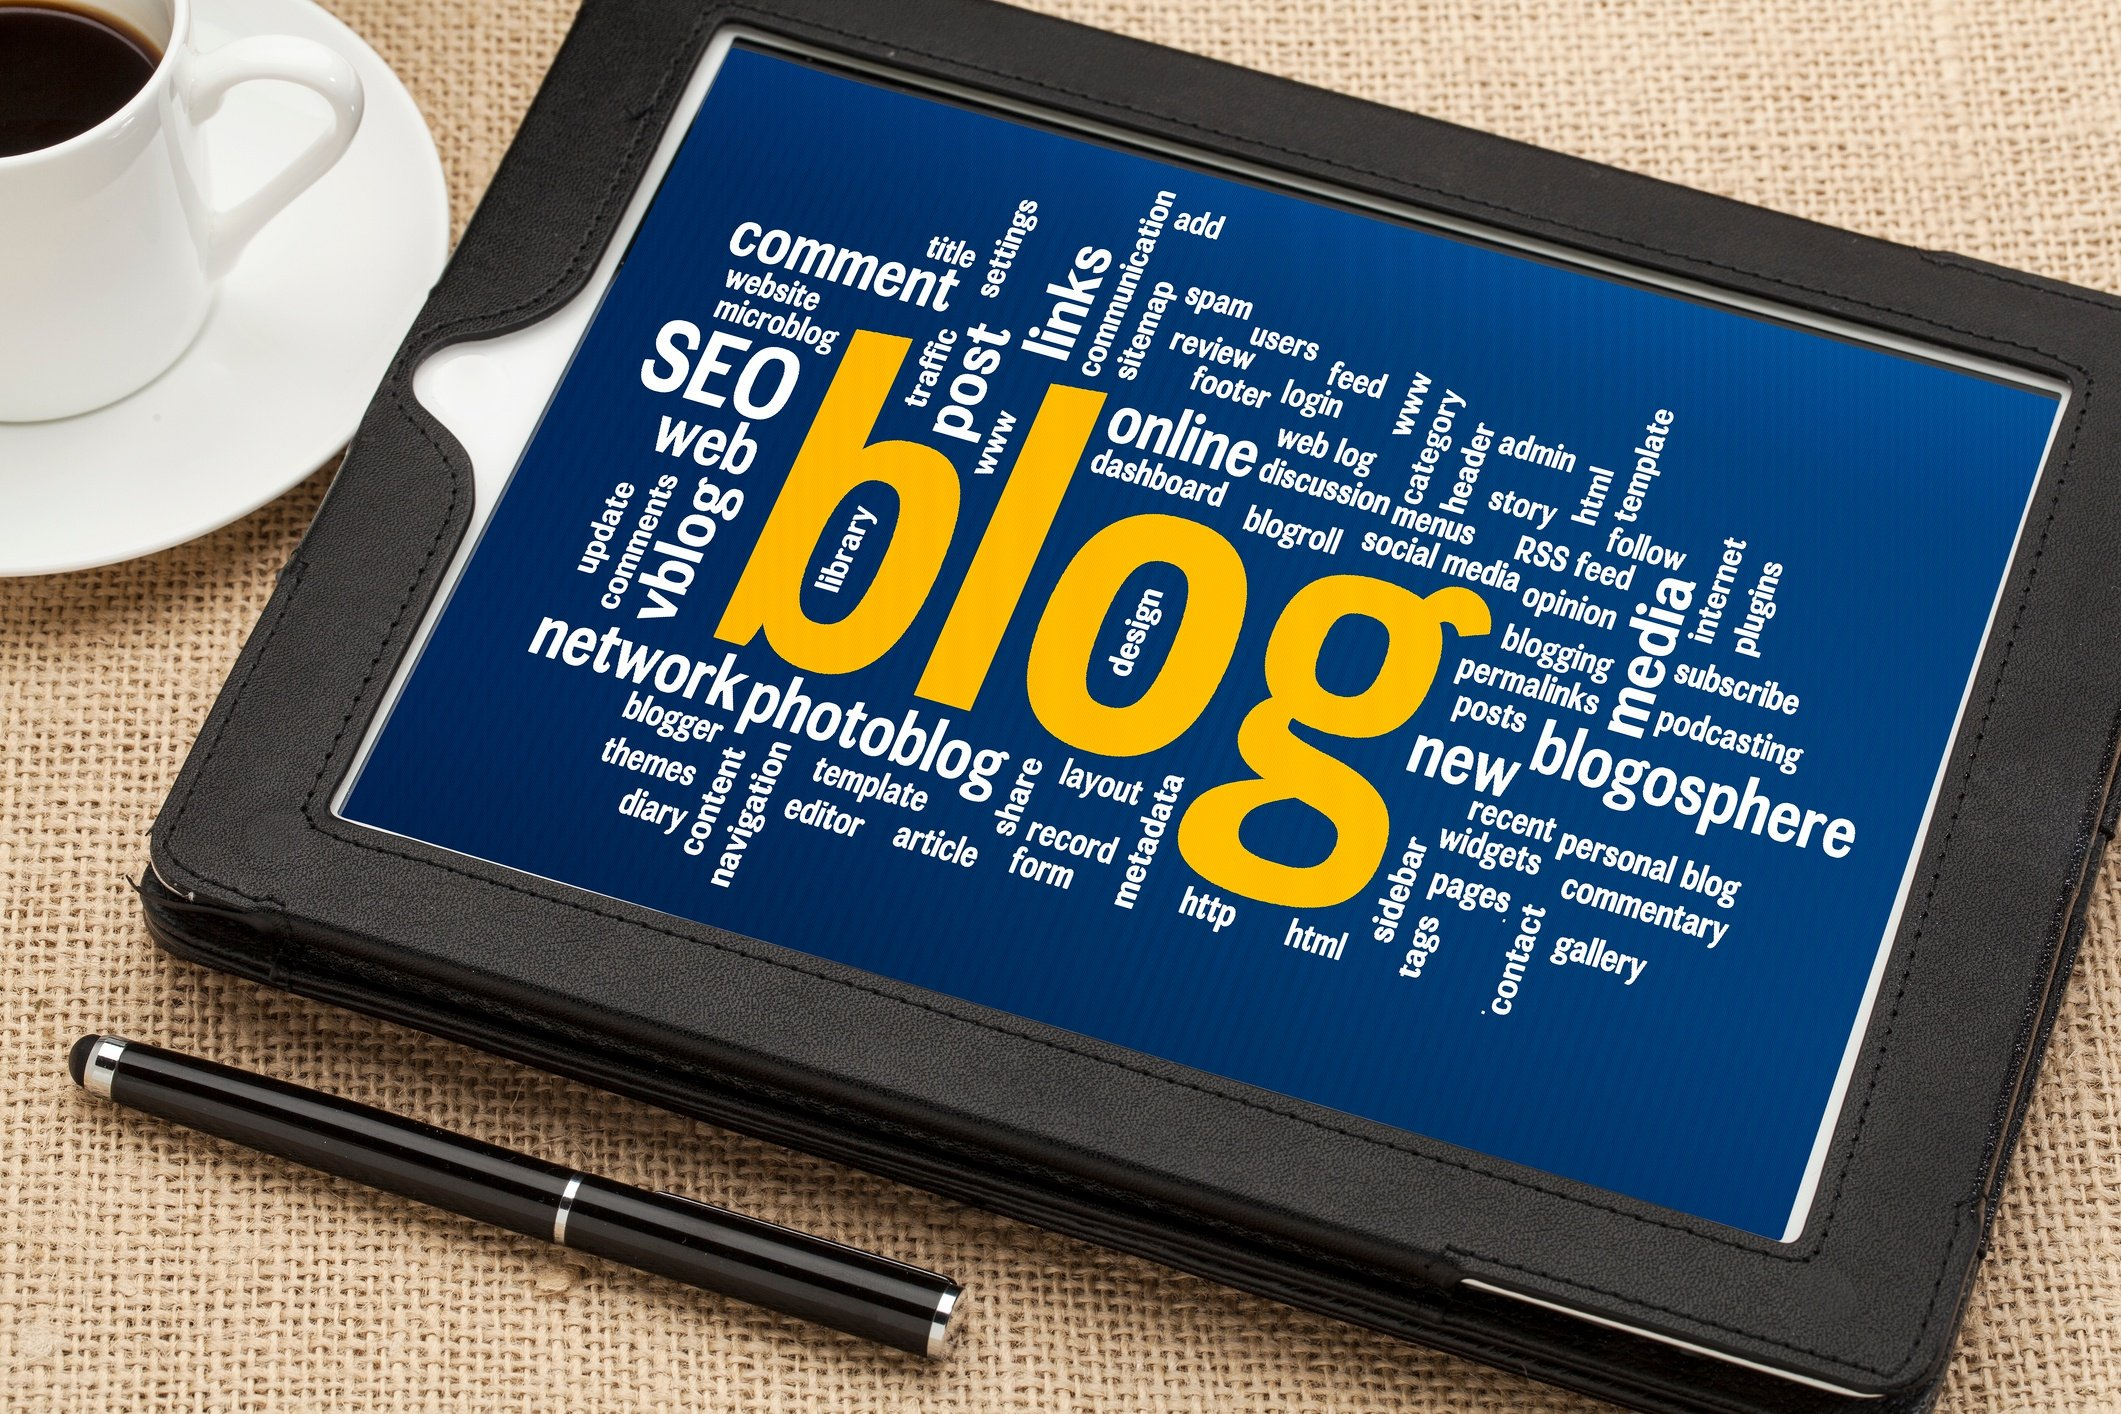 4-Quick-SEO-Blog-Tips-That-Will-Get-Your-Website-Ranking.jpg